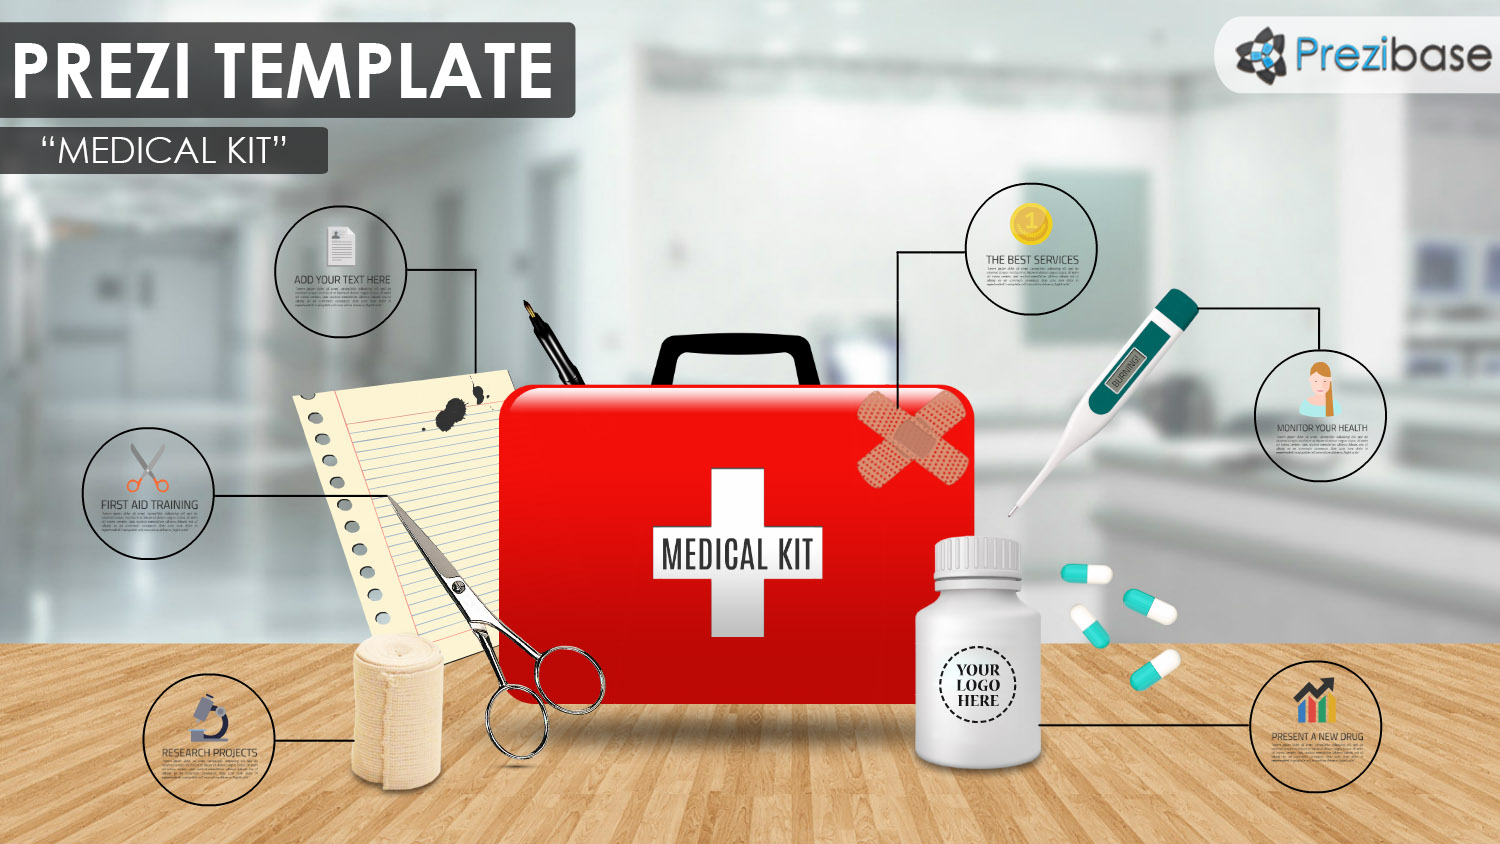 medical-kit-healthcare-hospital-first-aid-prezi-template.jpg